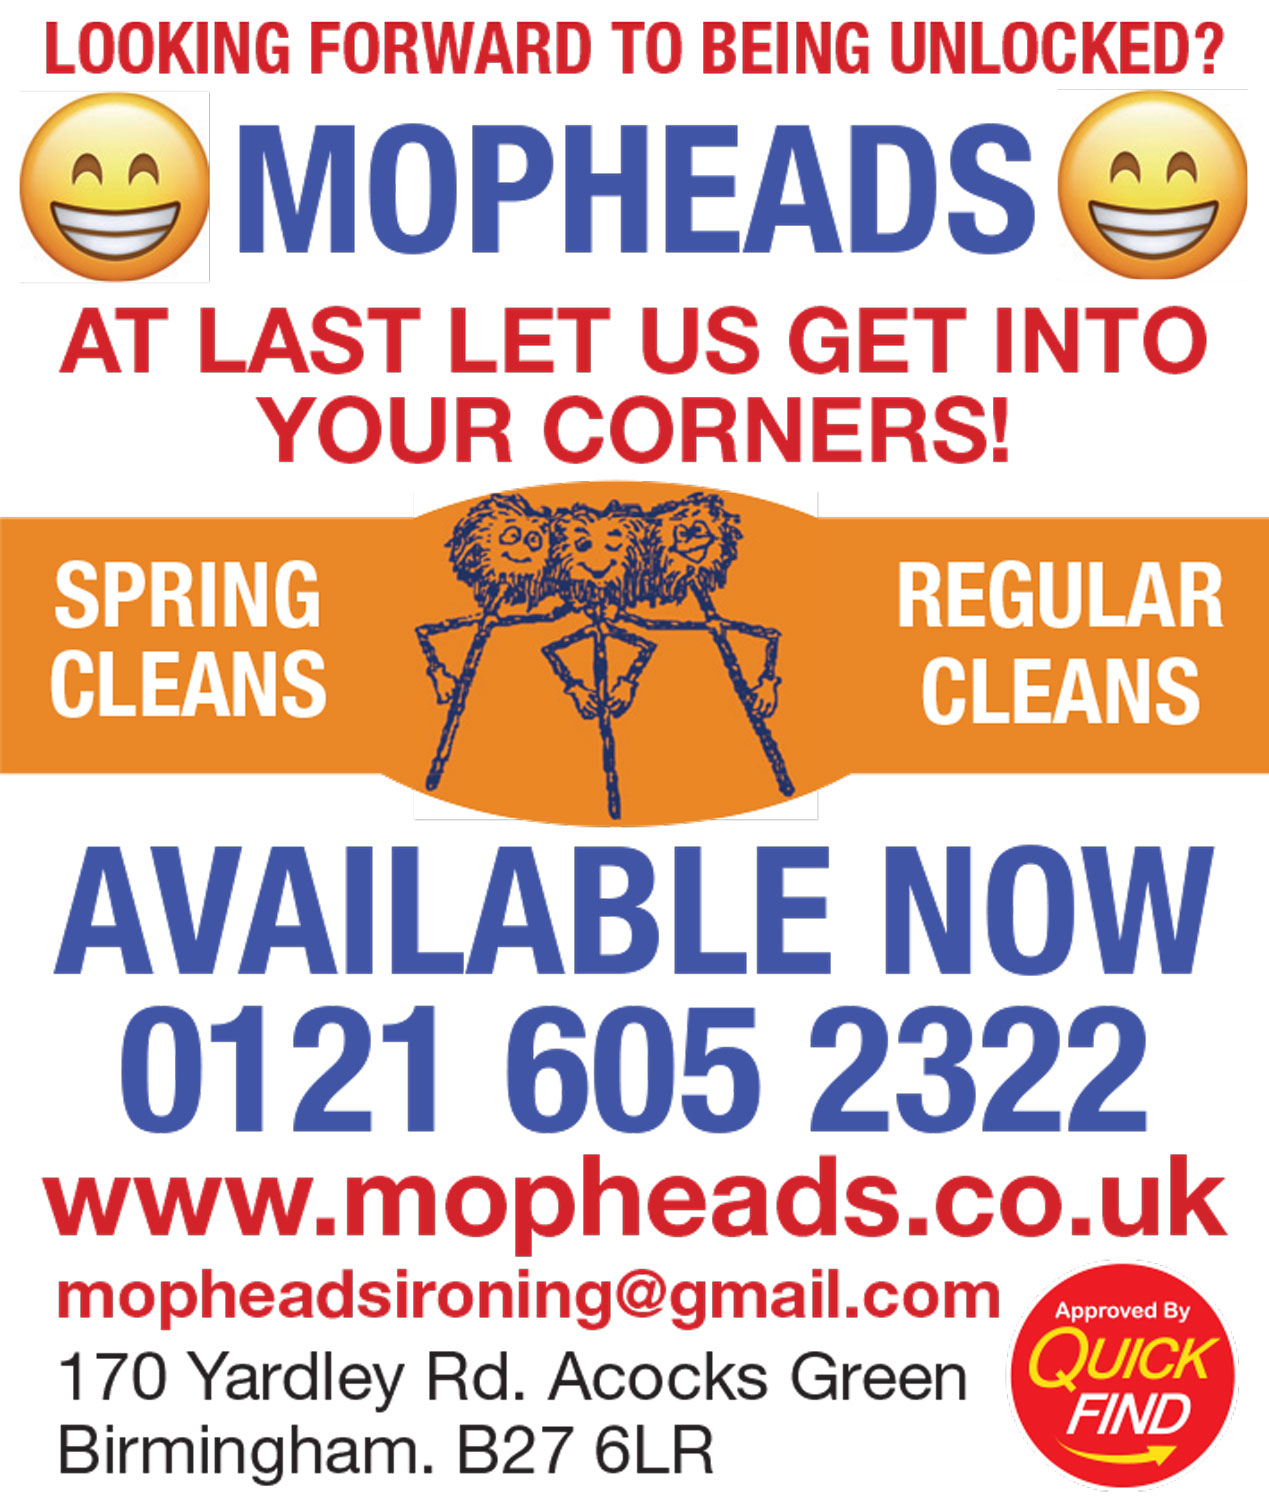 Mopheads